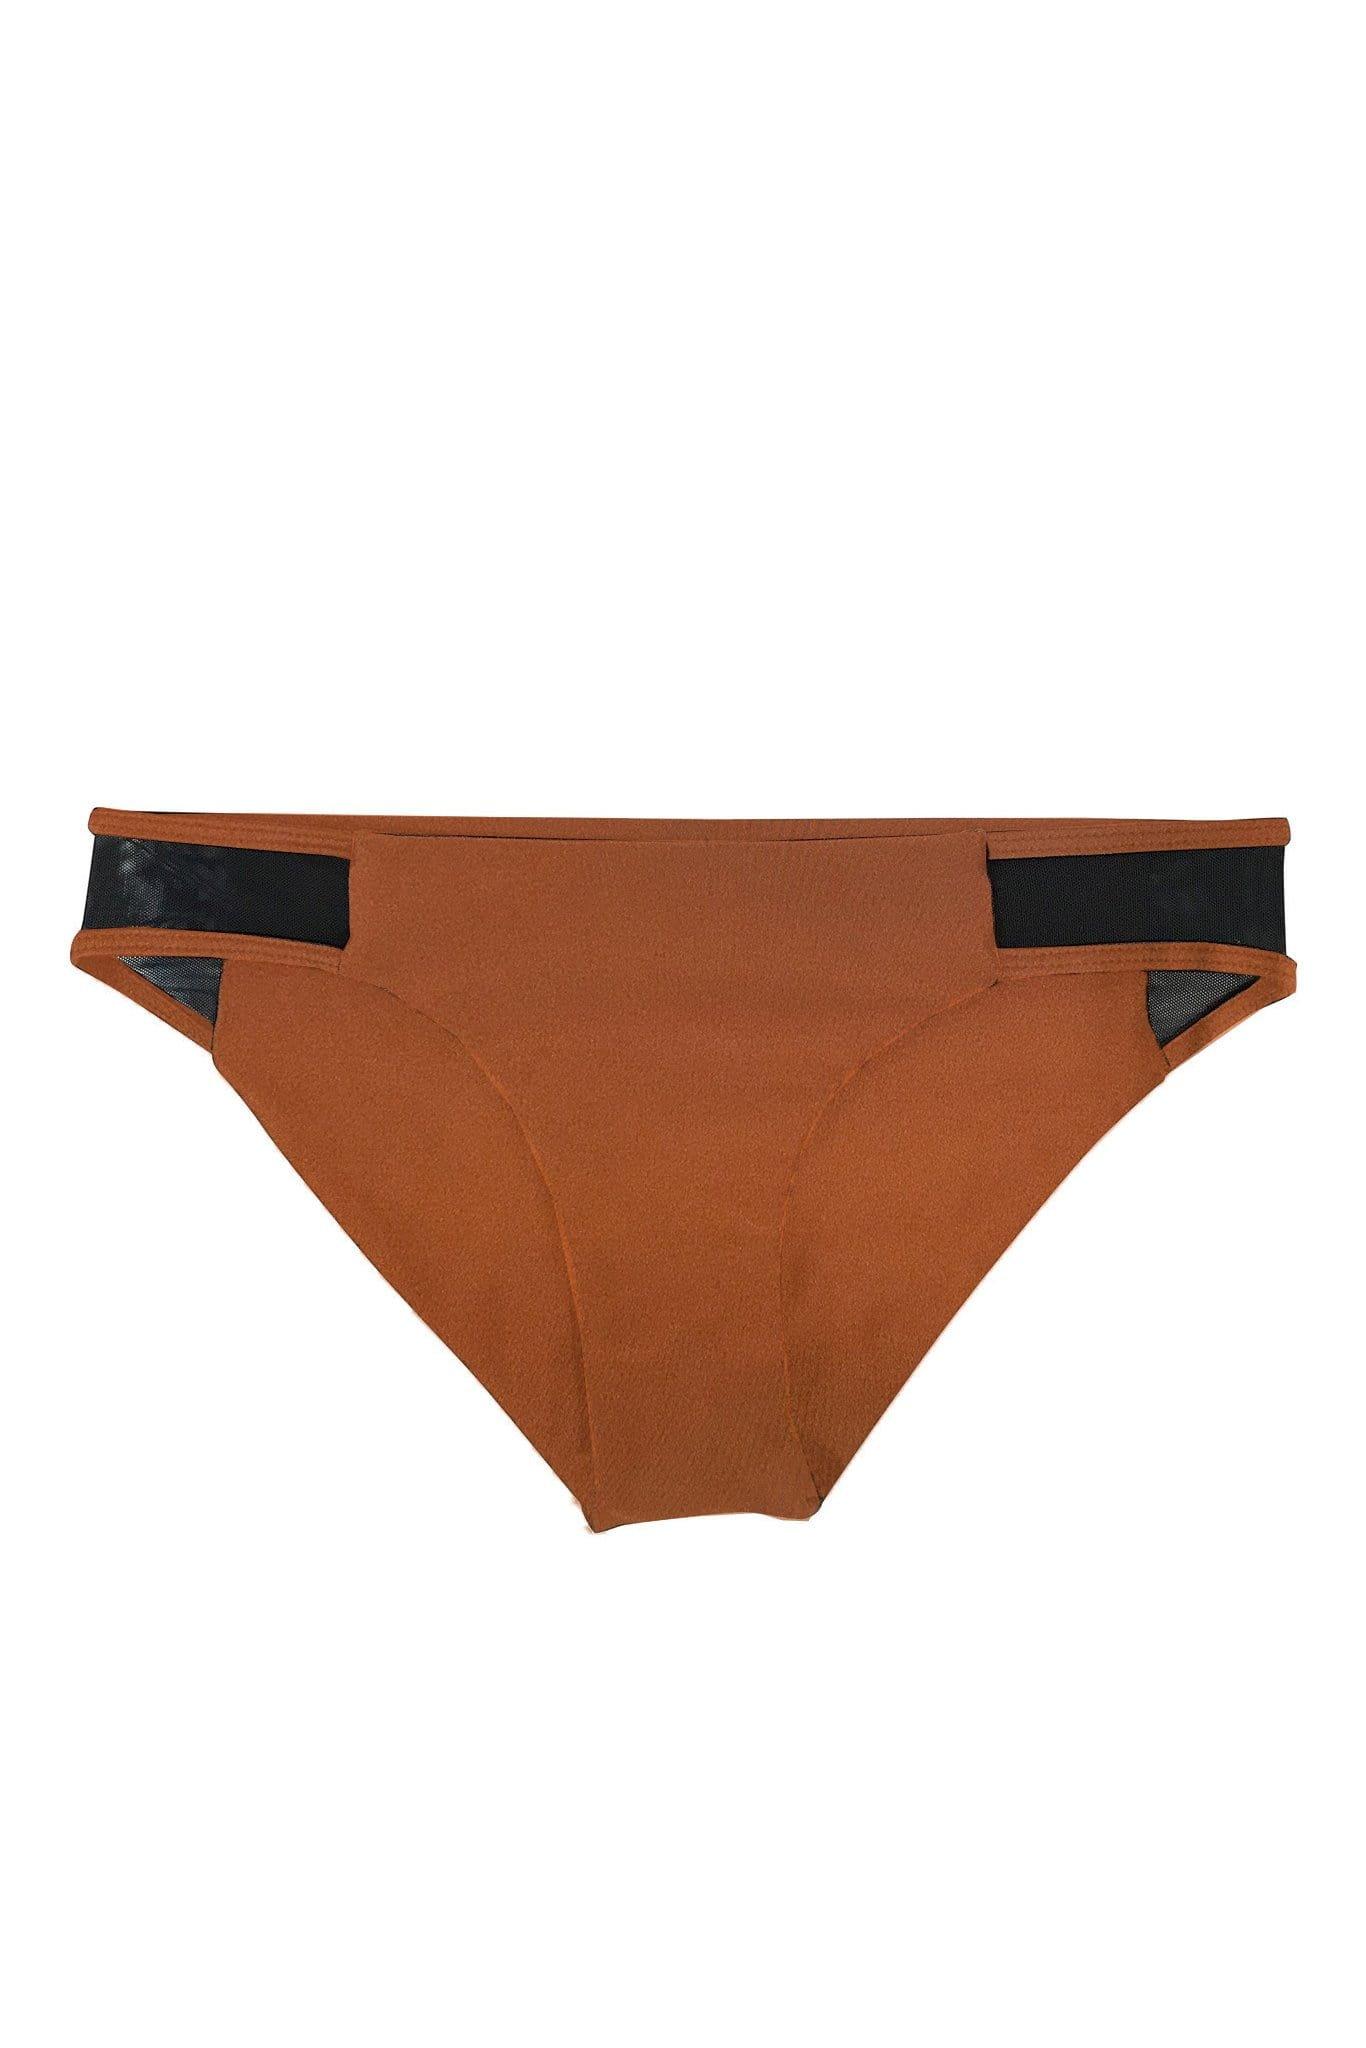 Kaili Bottom COPPER